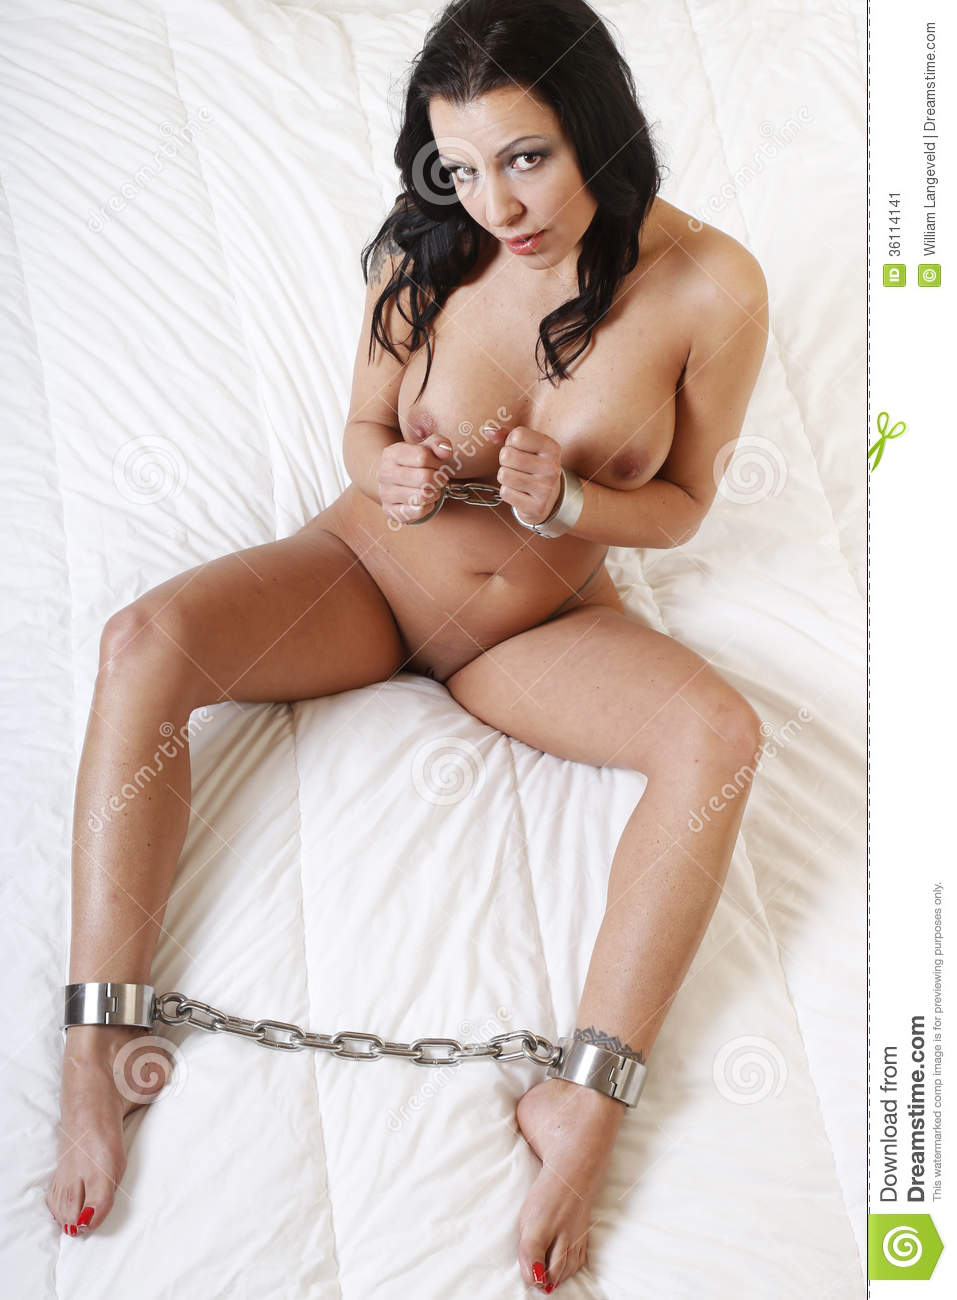 Belly handcuffs chain and